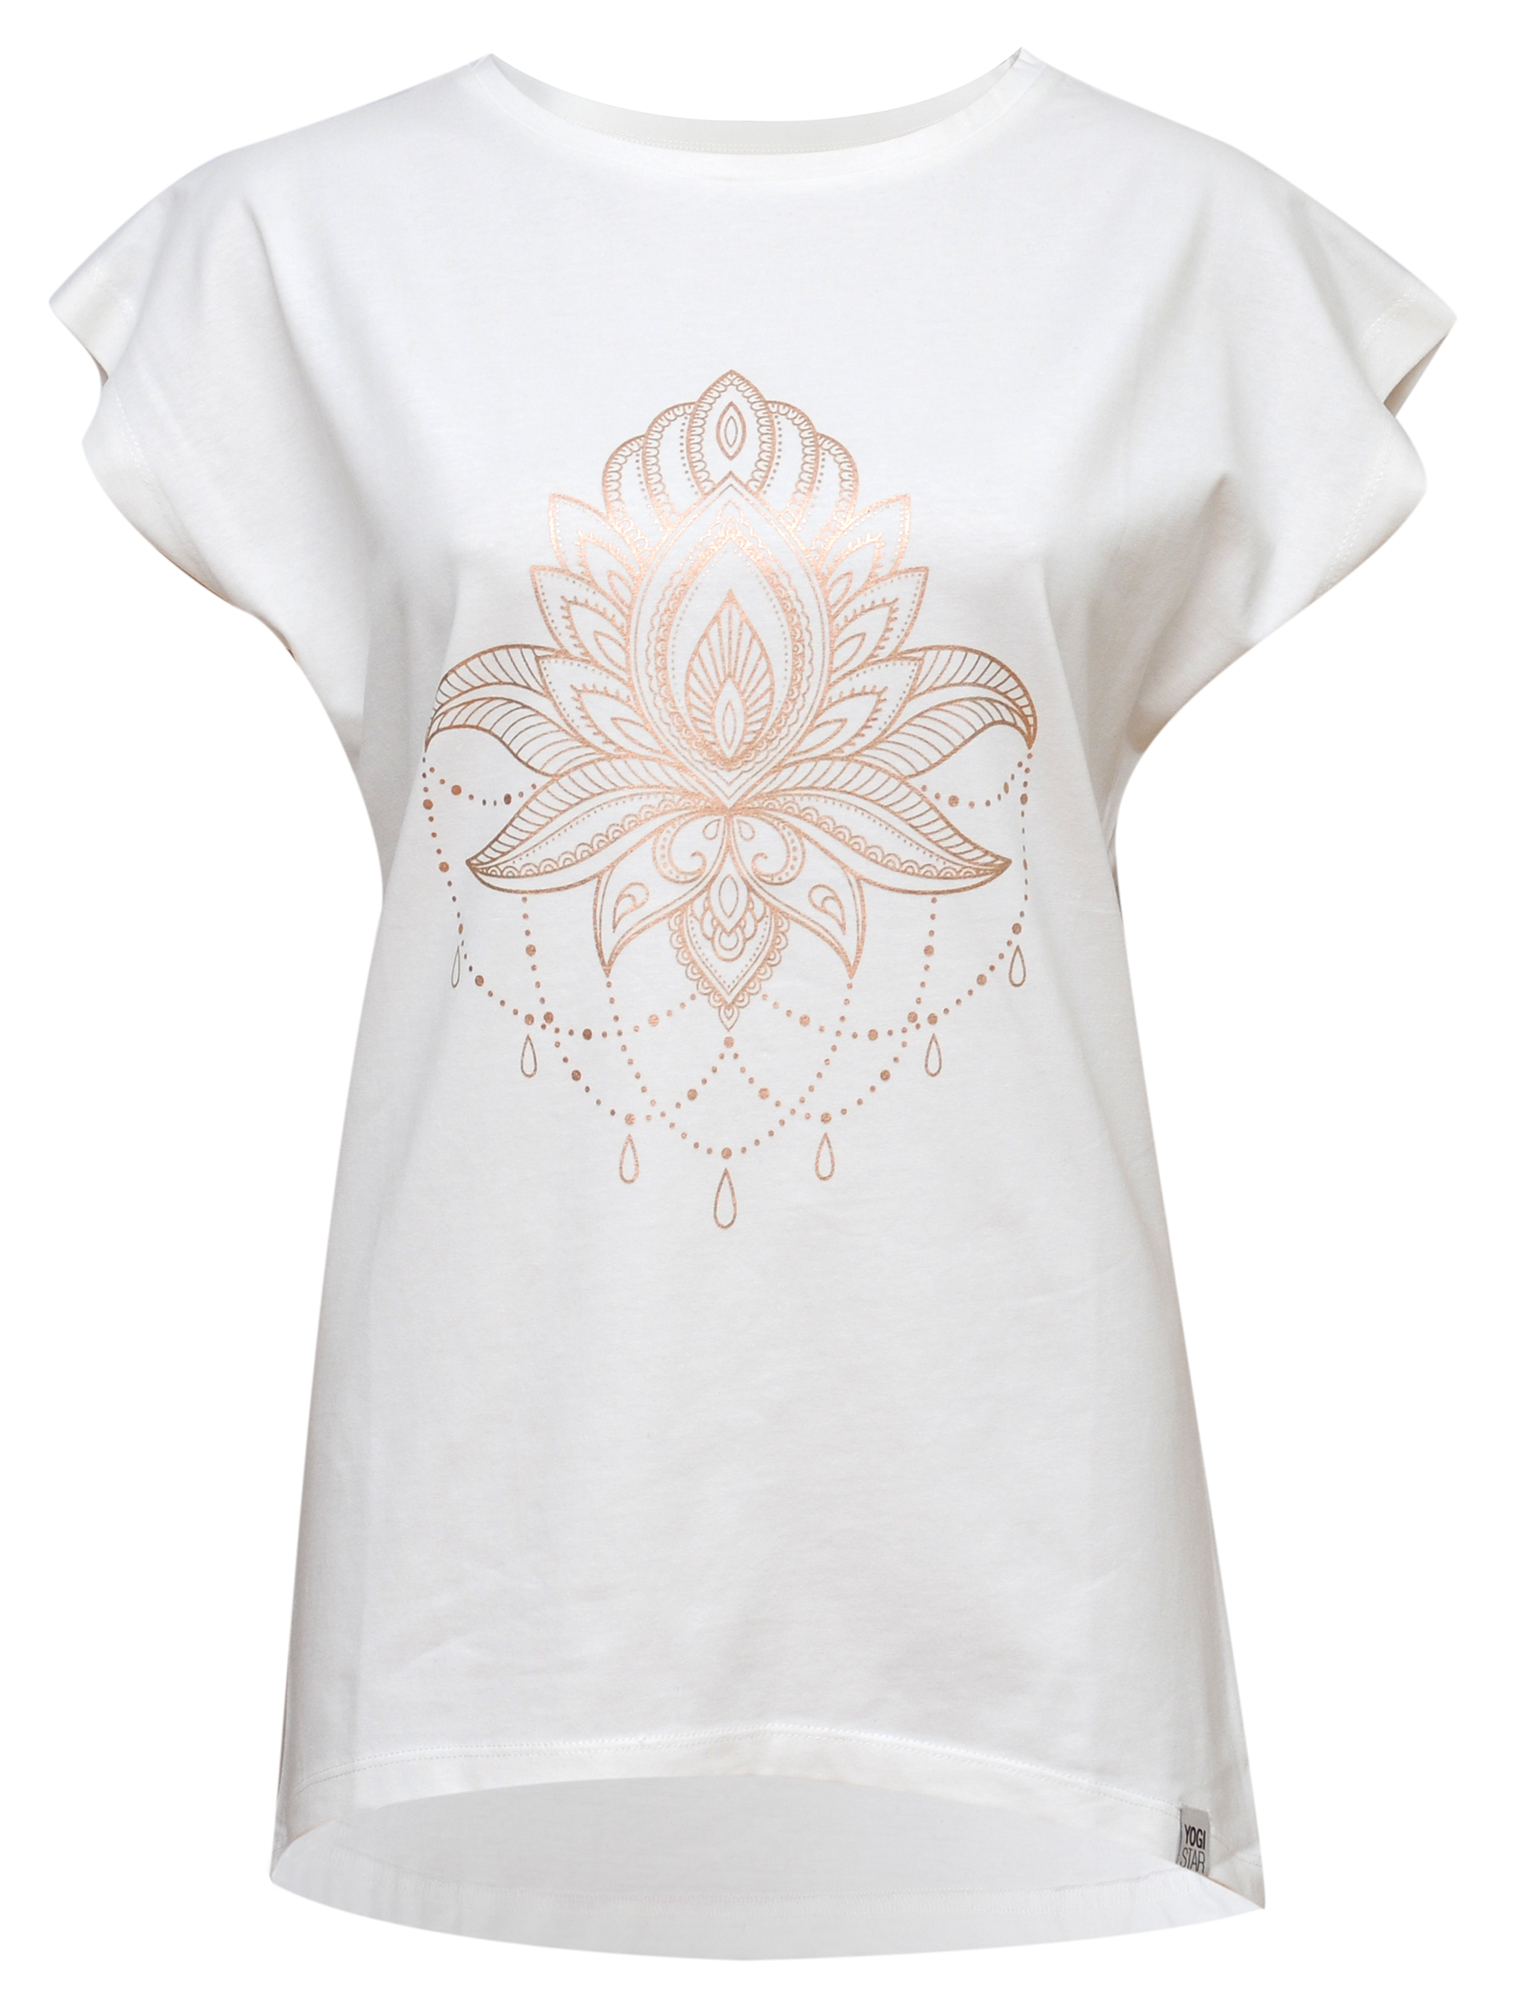 "Yoga-T-Shirt Batwing ""celestial flower"" - ivory/copper"